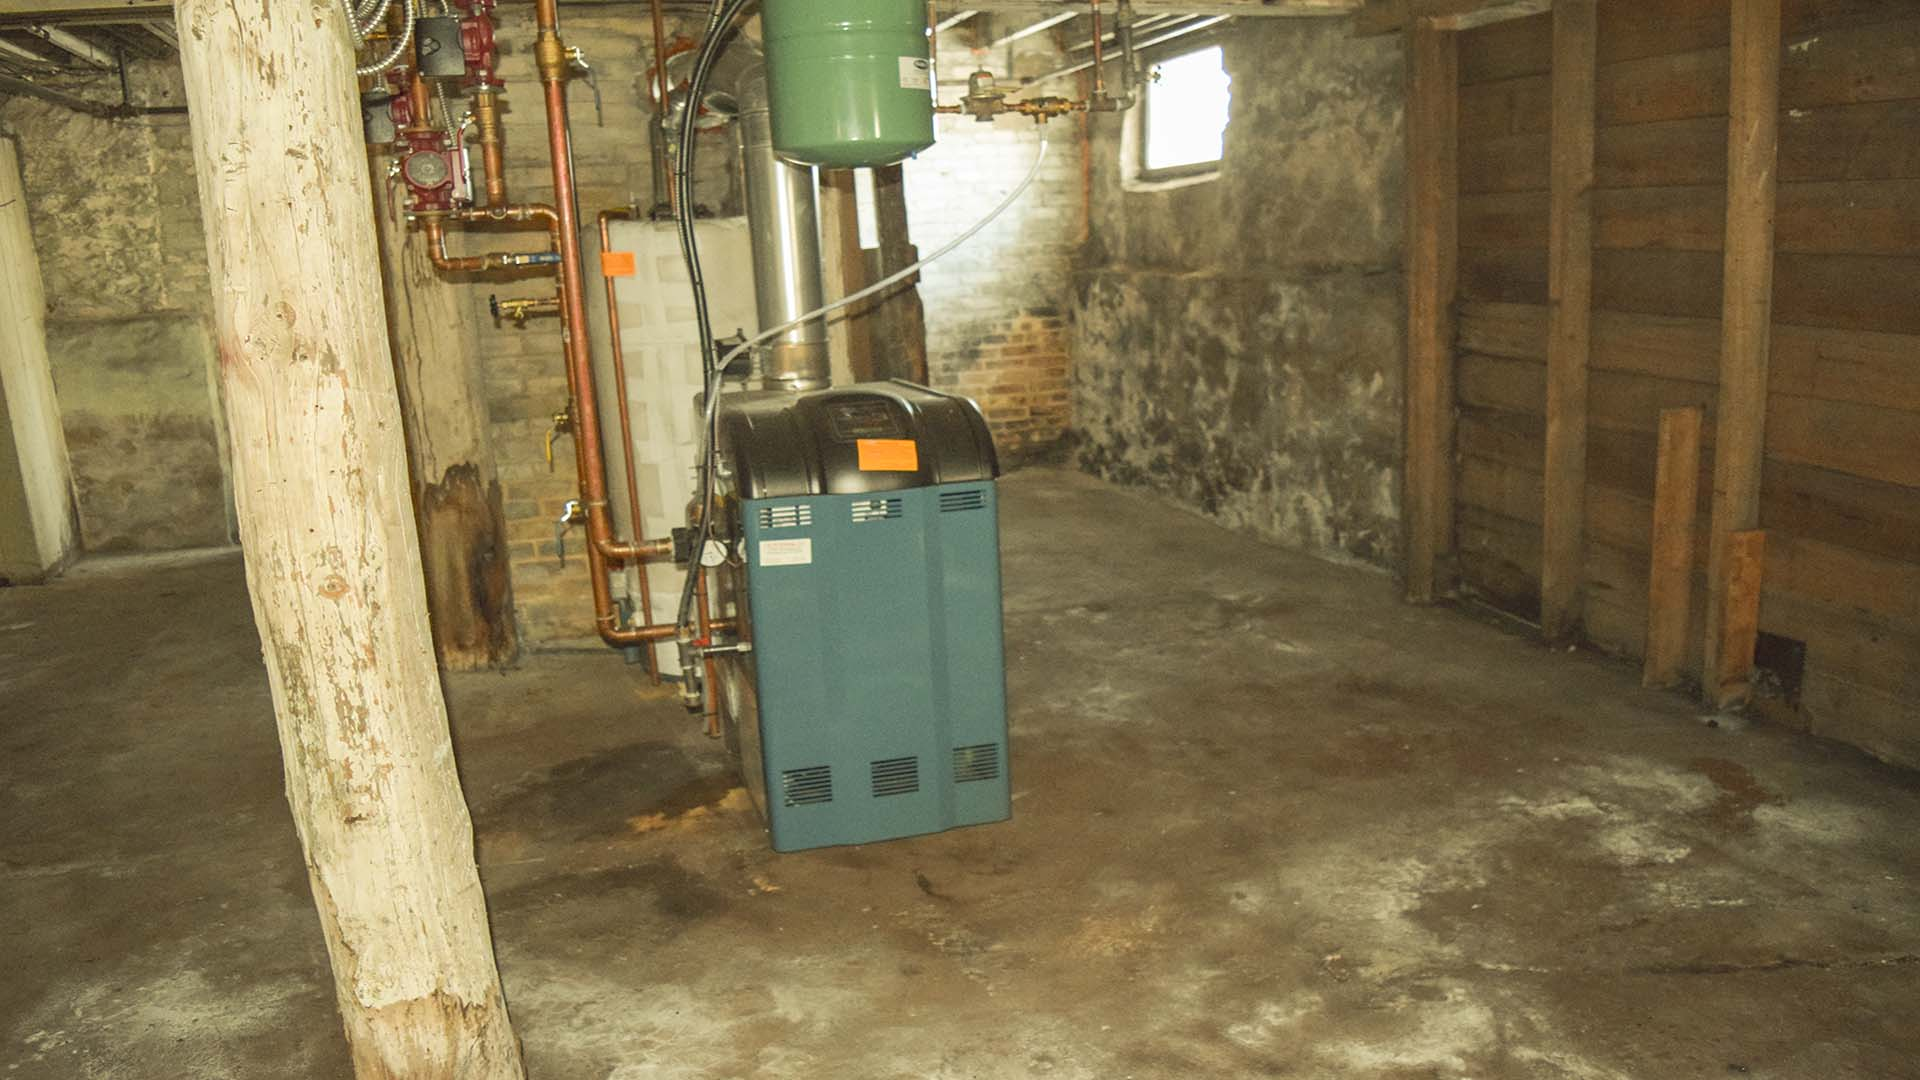 Here is a new furnace, it looks like it didn't get used because there were leaky radiators throughout the house to fix.